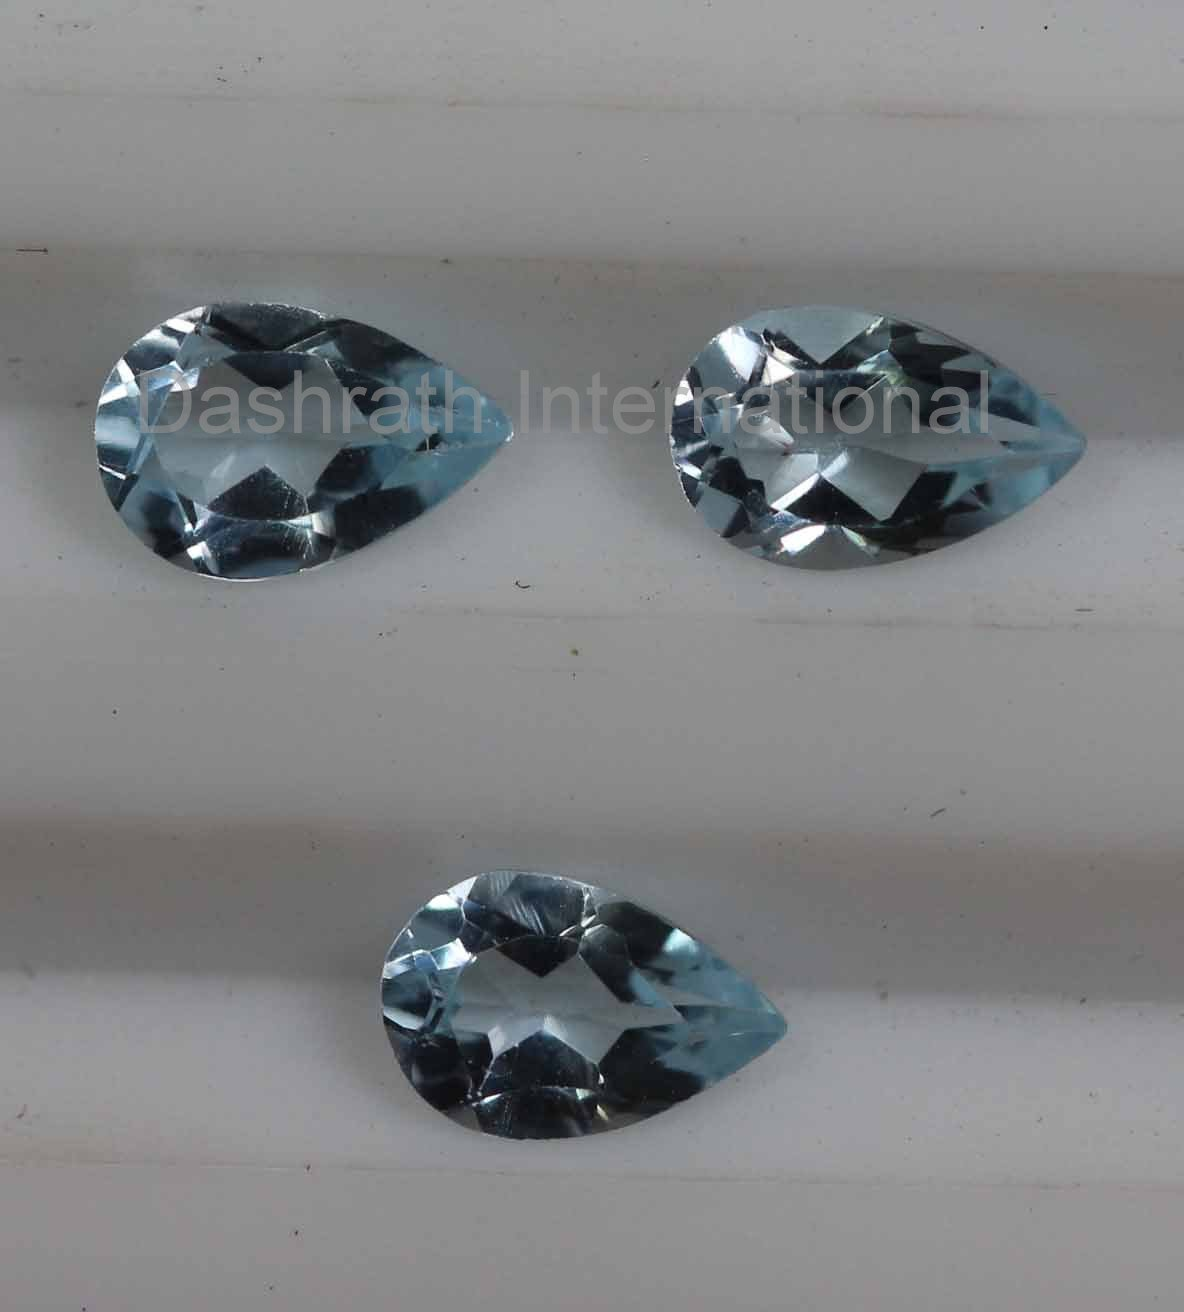 7x10mm  Natural Sky Blue Topaz Faceted Cut Pear 100 Pieces Lot  Top Quality Loose Gemstone